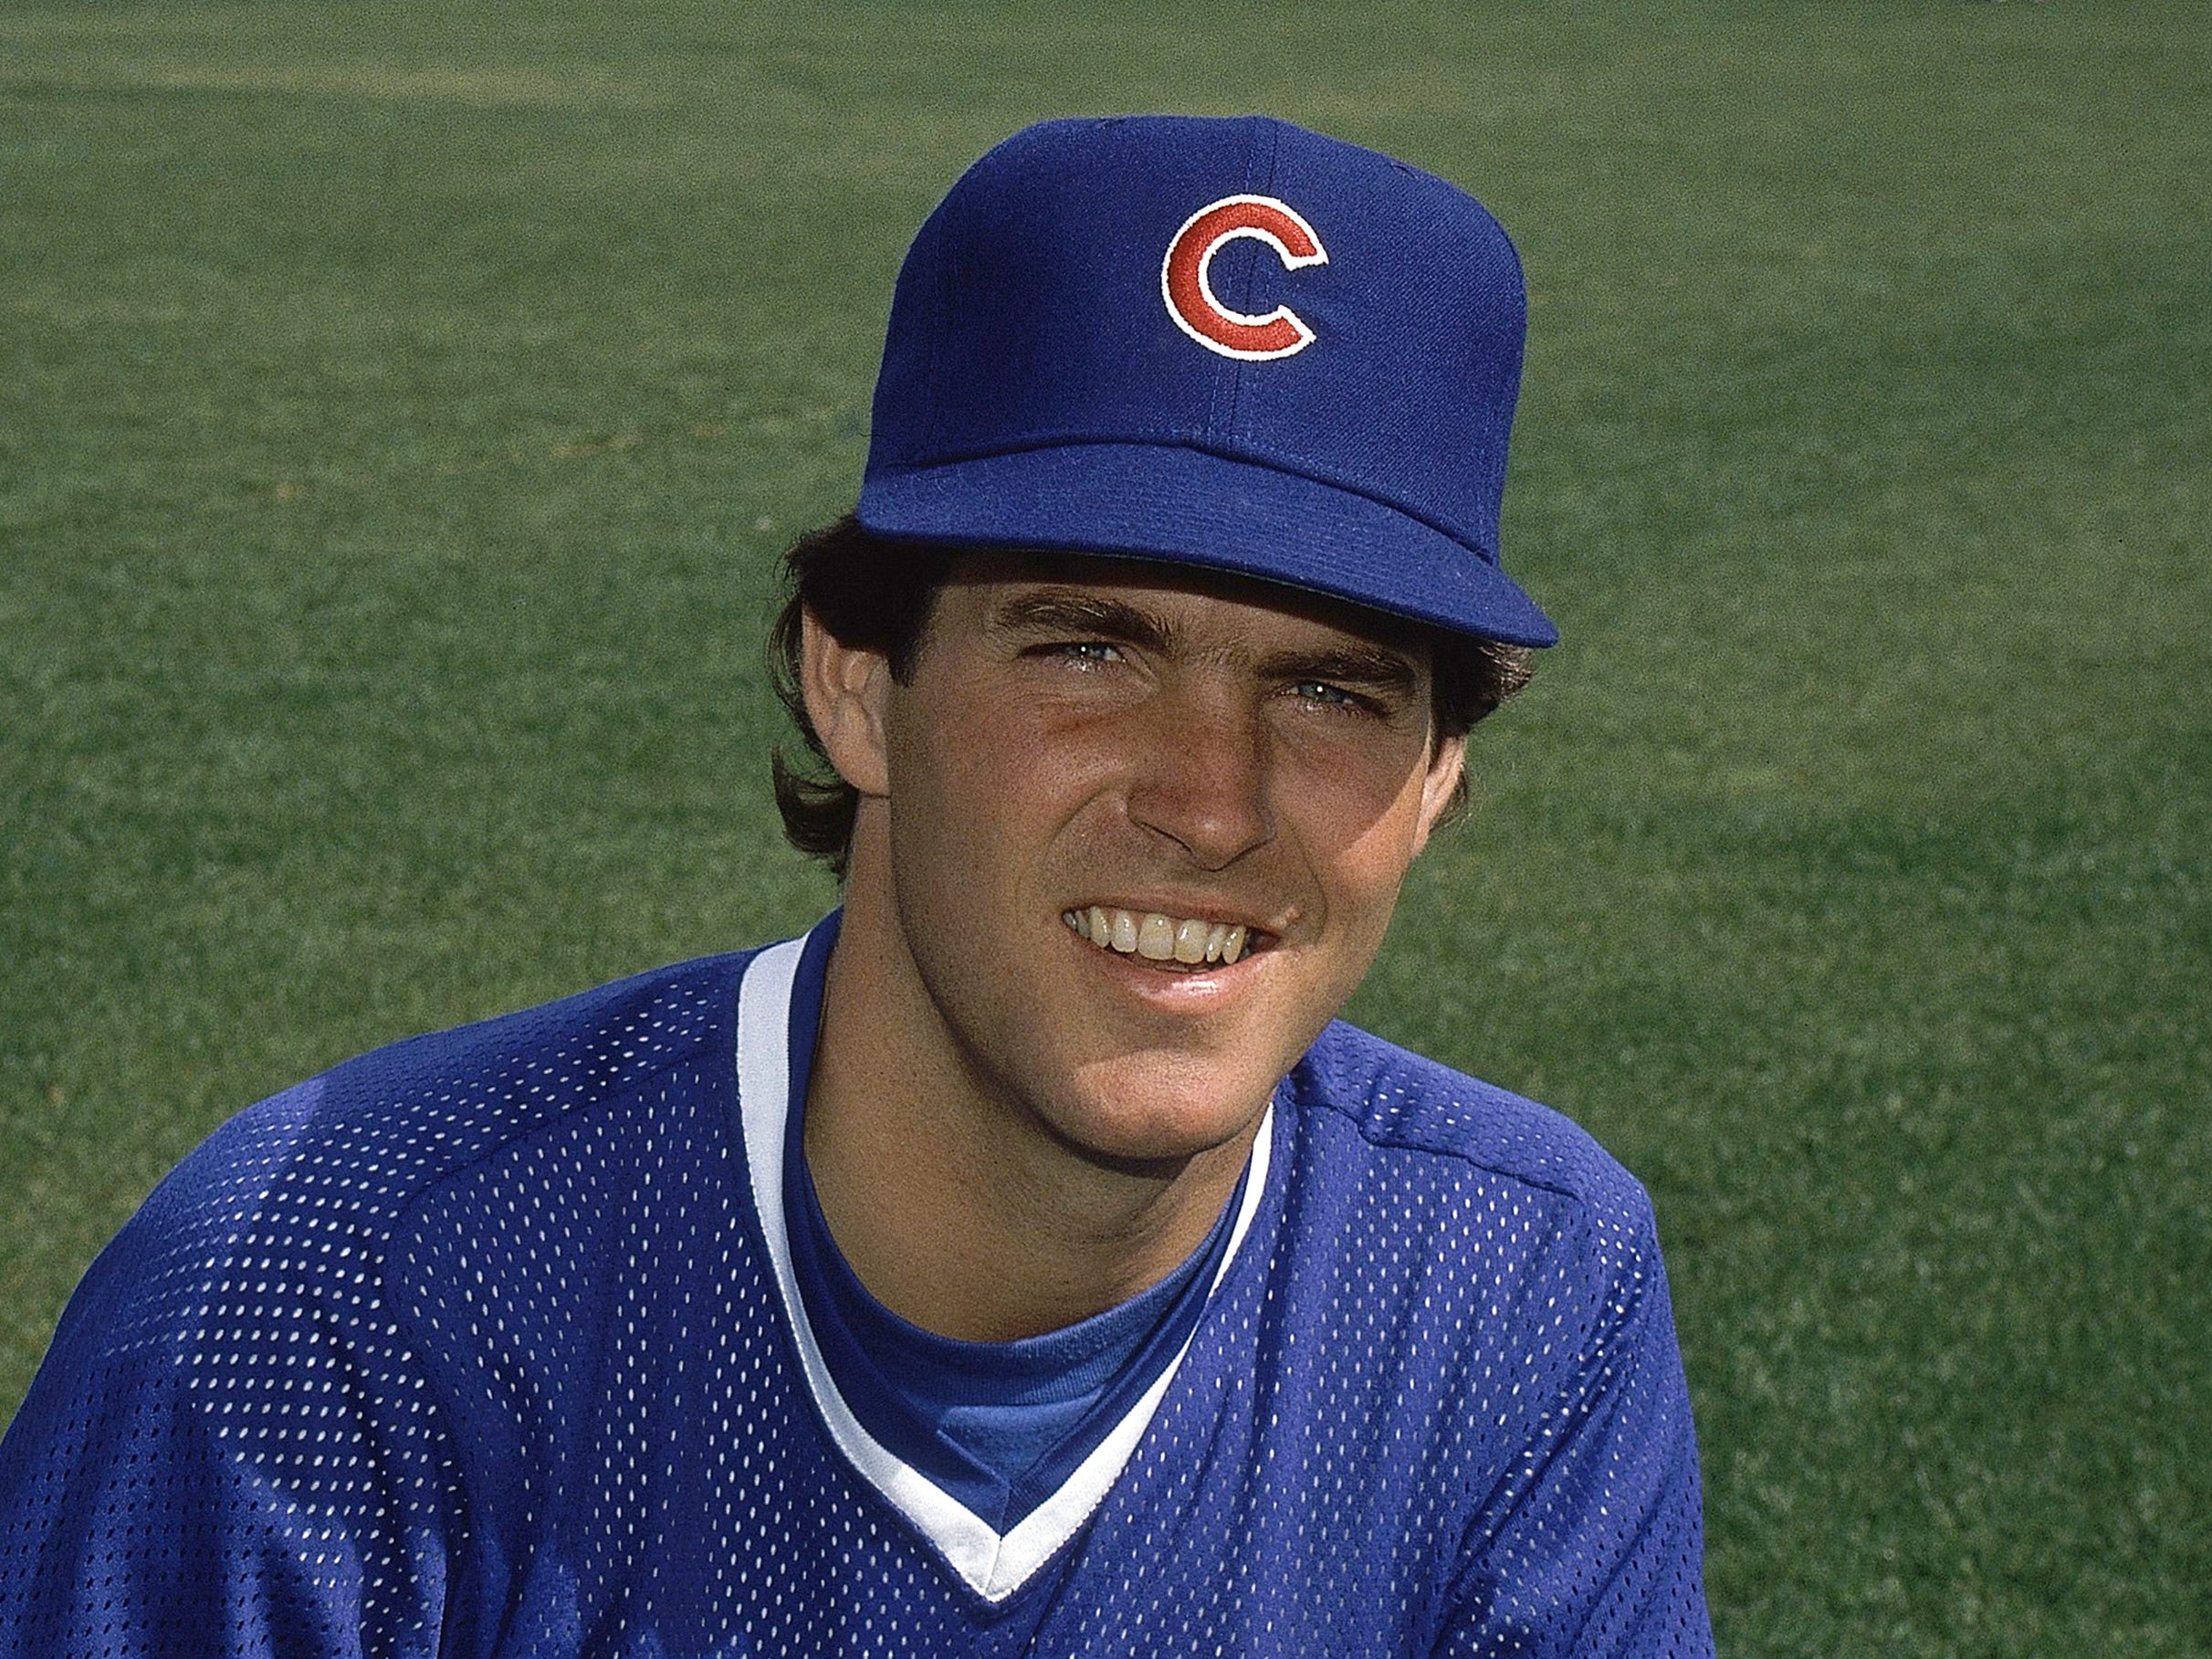 Scott Sanderson, Dearborn native and major-league pitcher from 1978-96 who later went on to become an agent. April 11. He was 62.